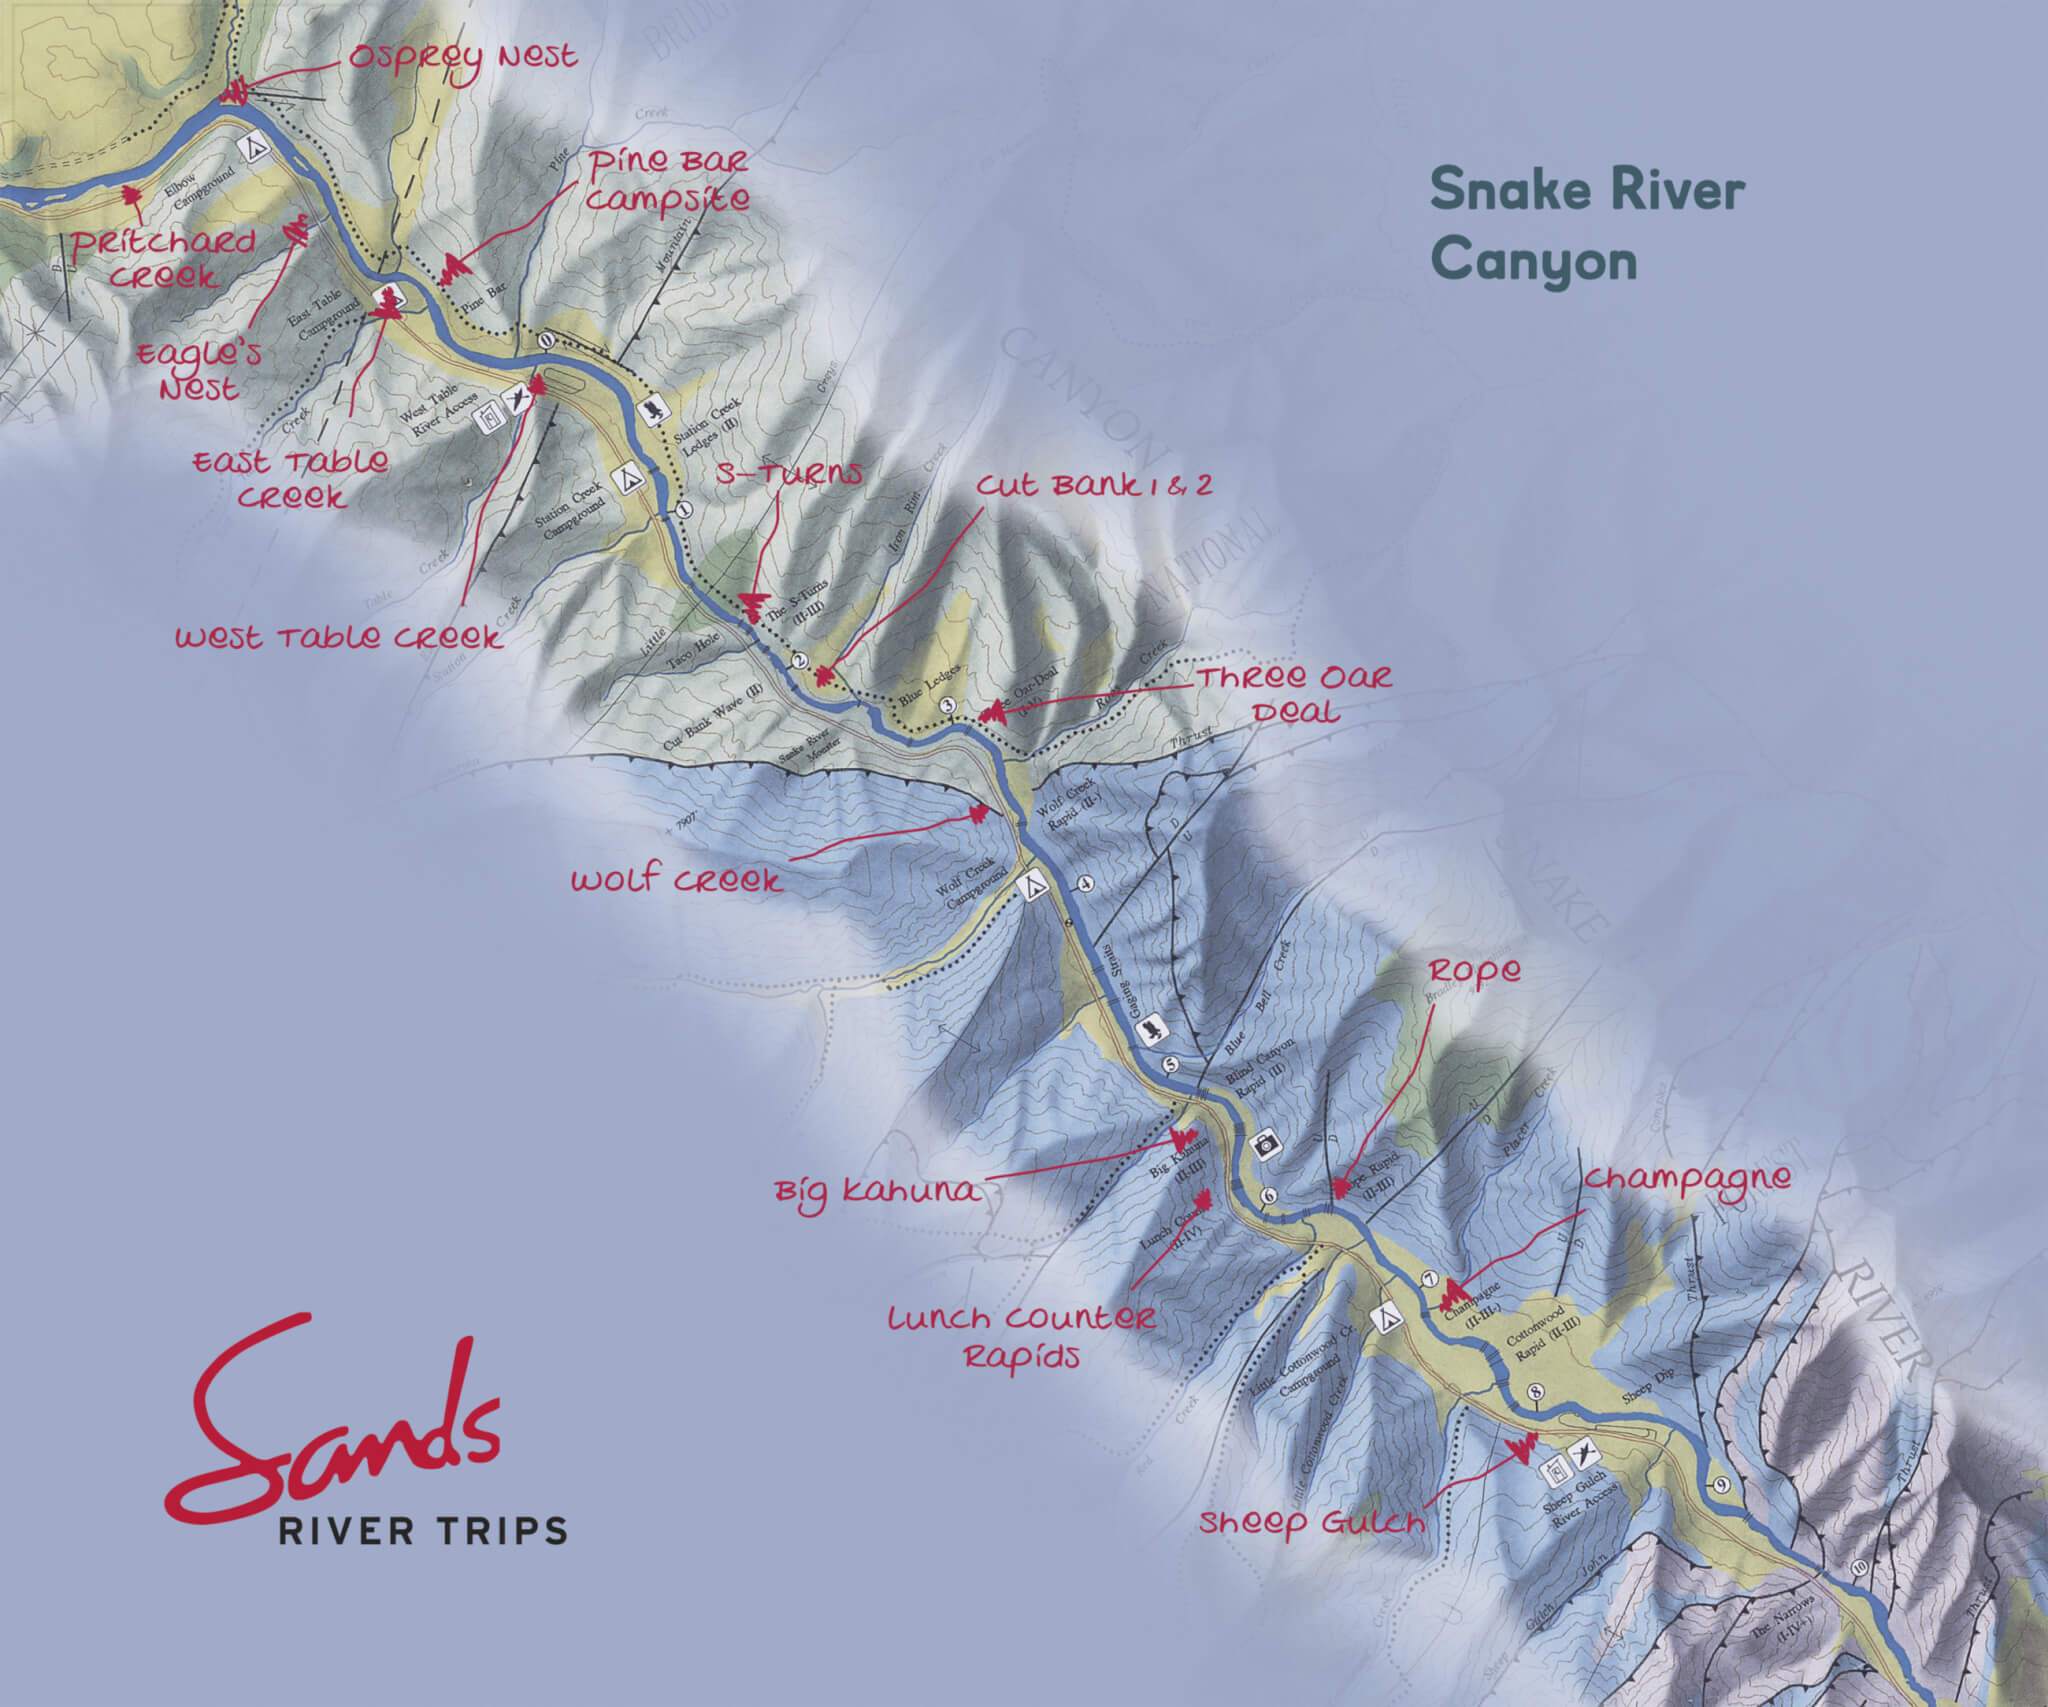 River Map | SandsWhitewater.com